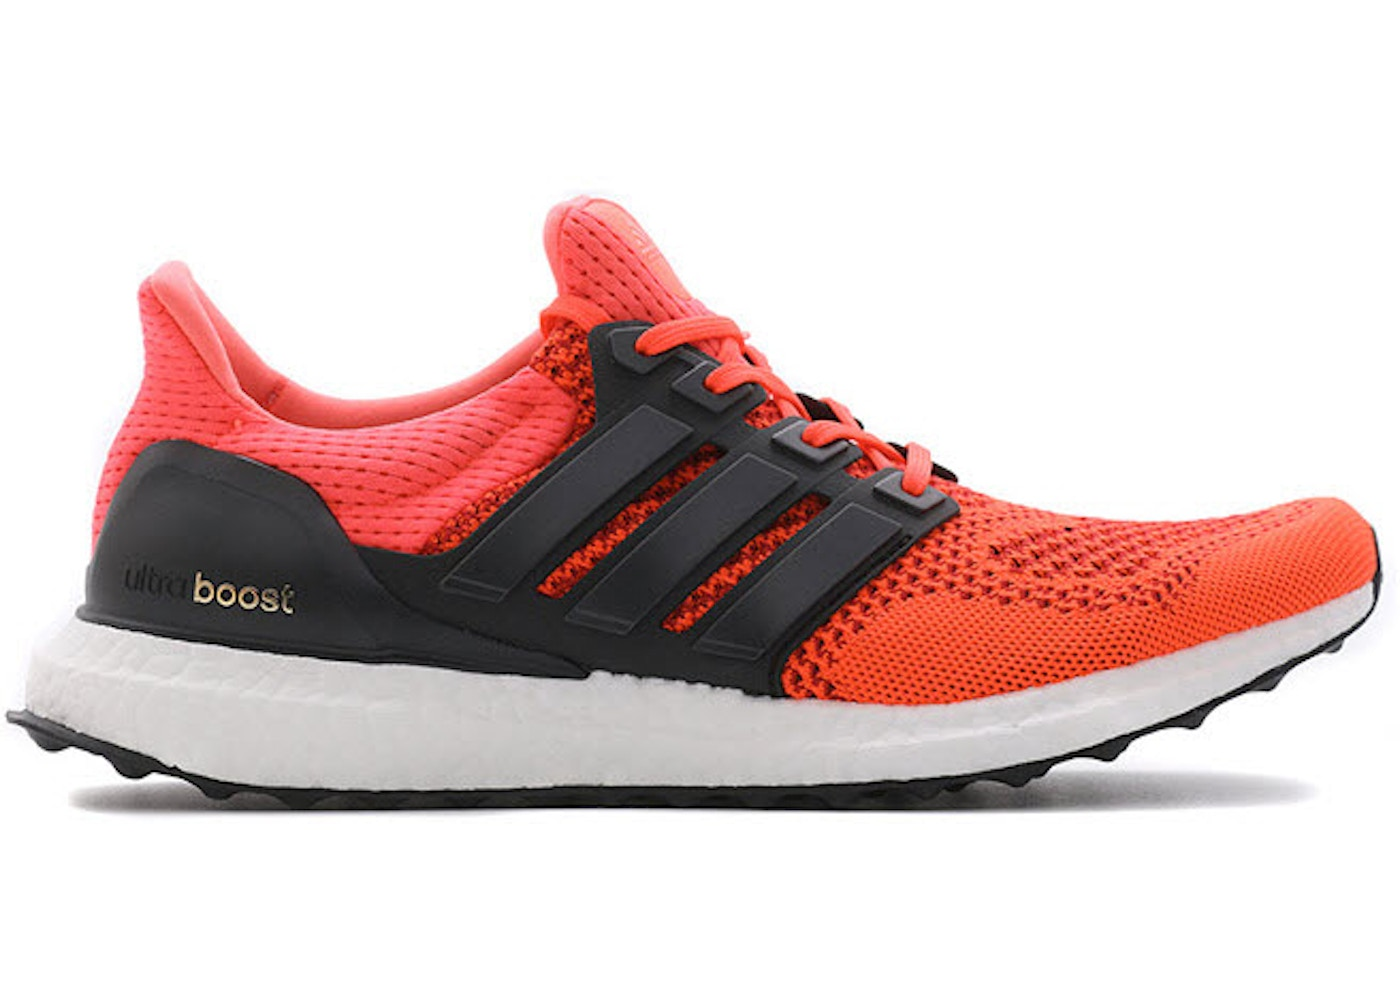 3129b73eadd98 adidas Ultra Boost 1.0 Solar Red - B34050